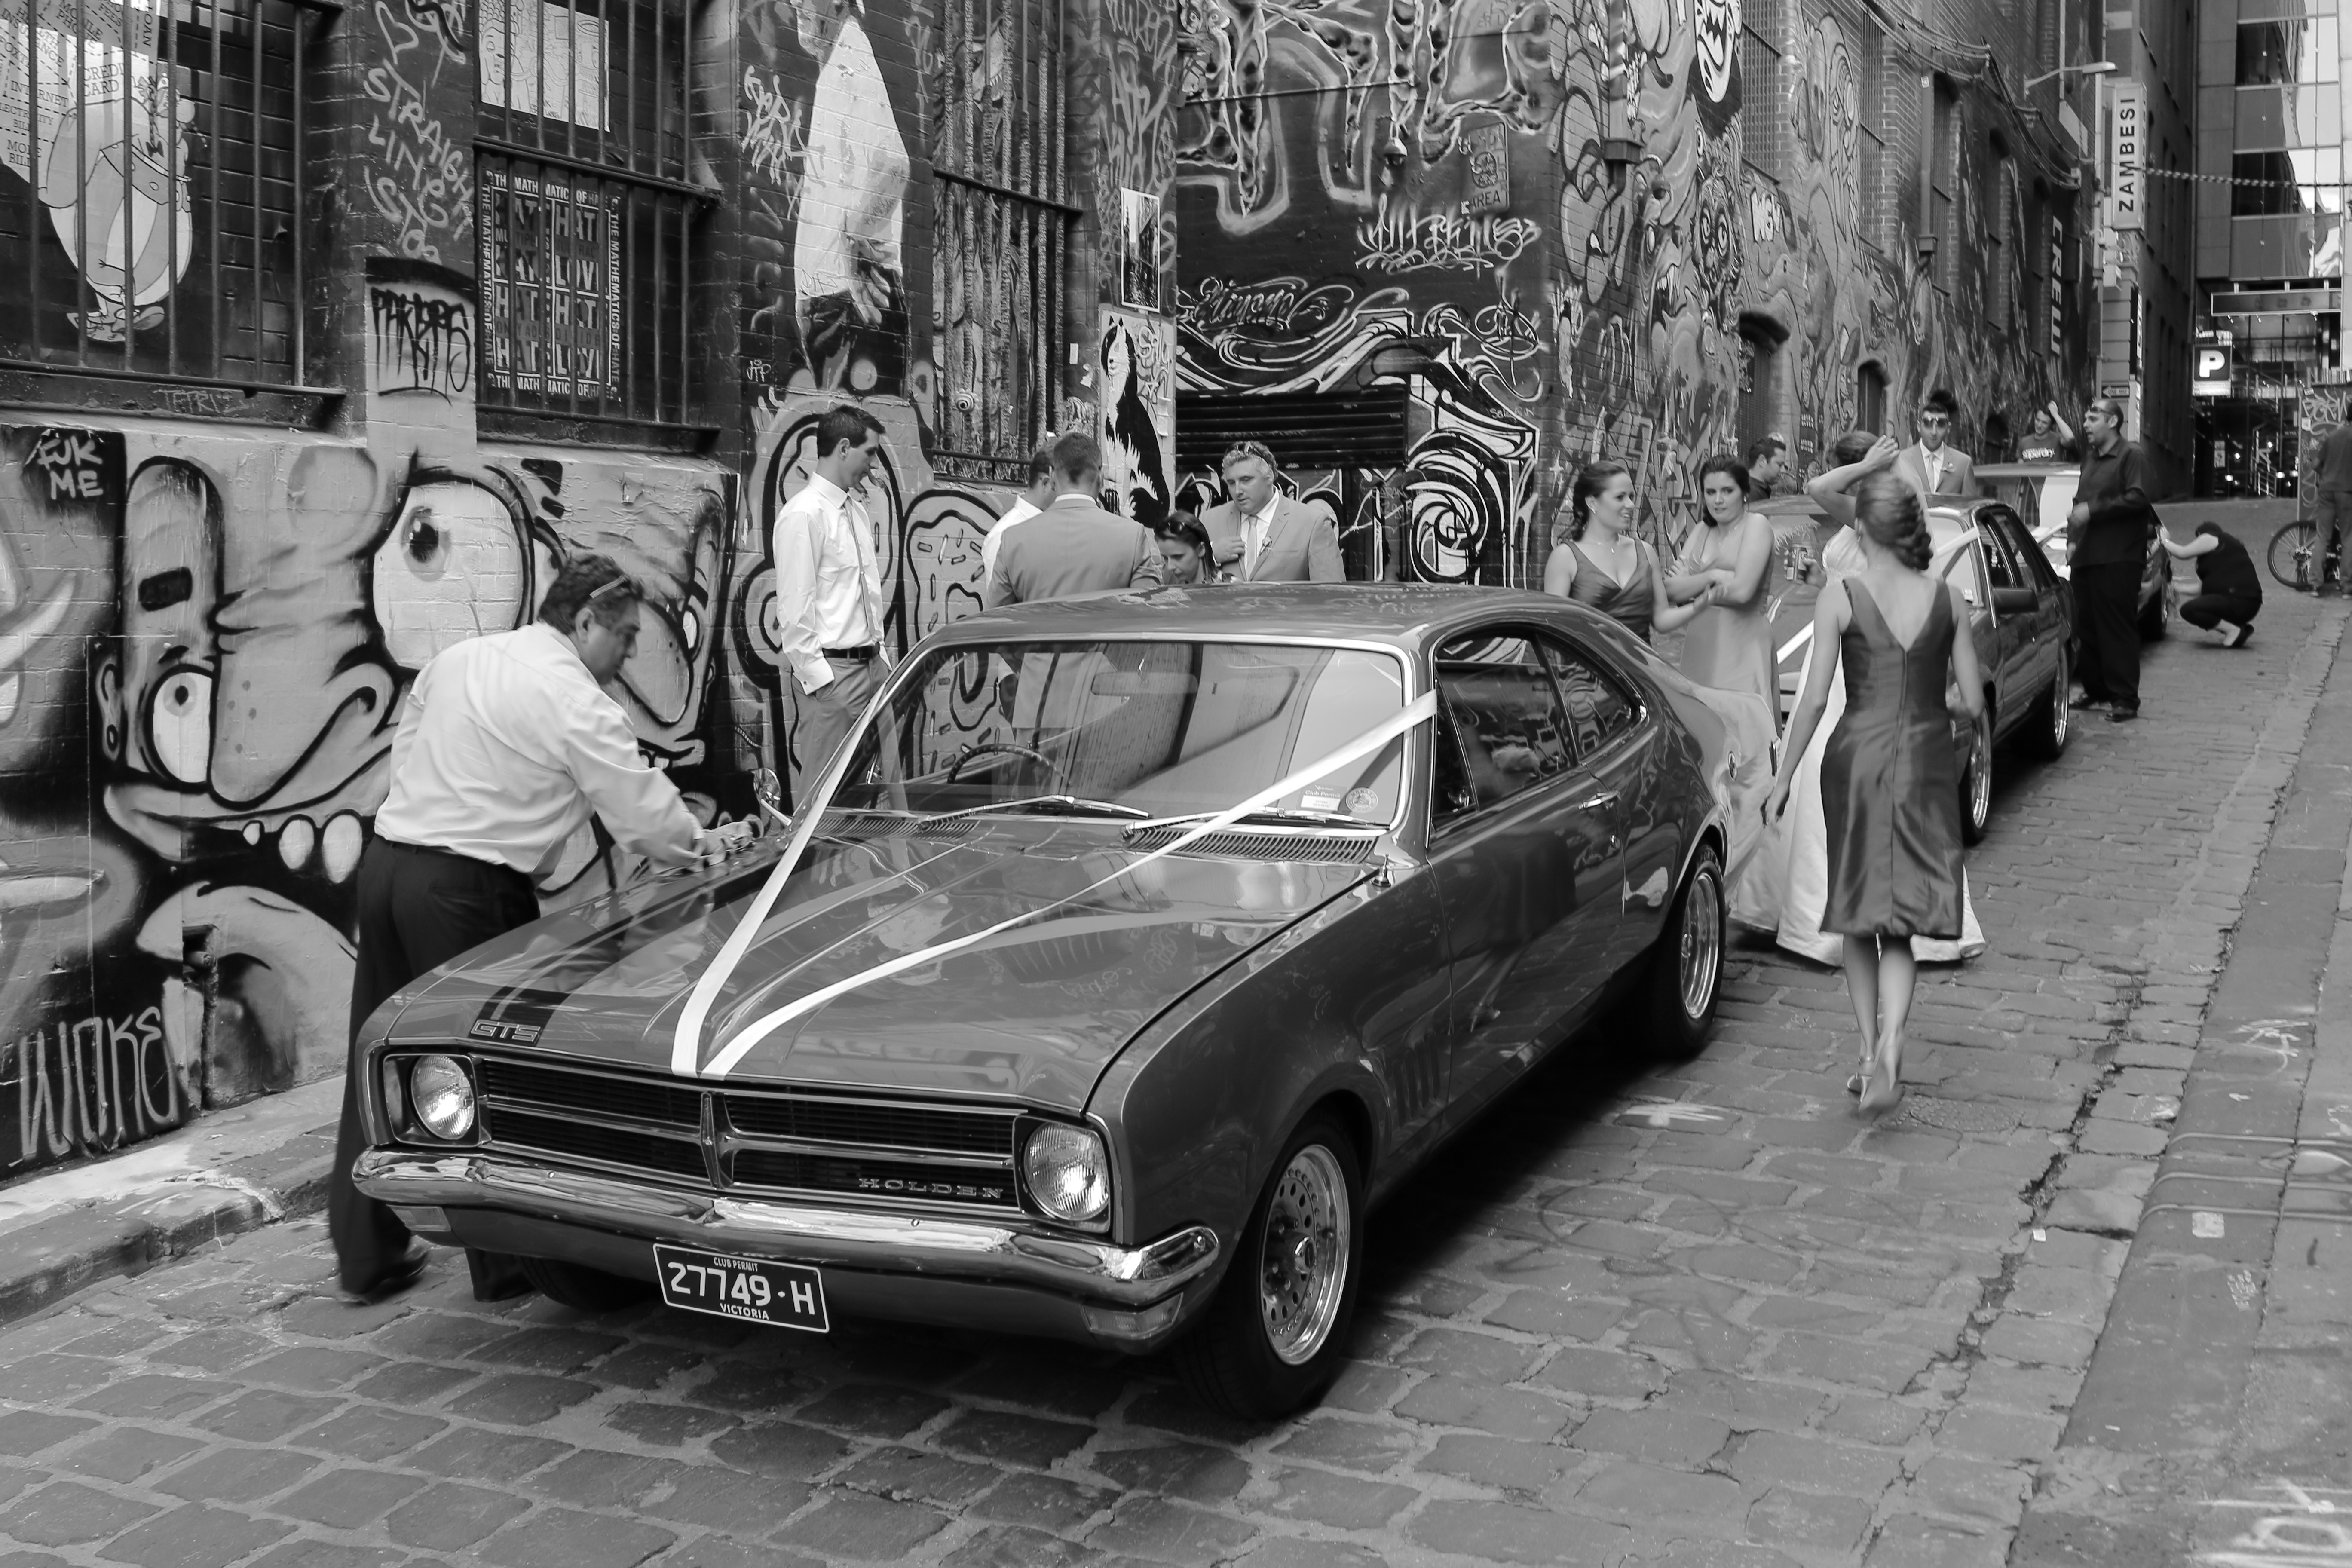 Black and white photo of a car and people around it